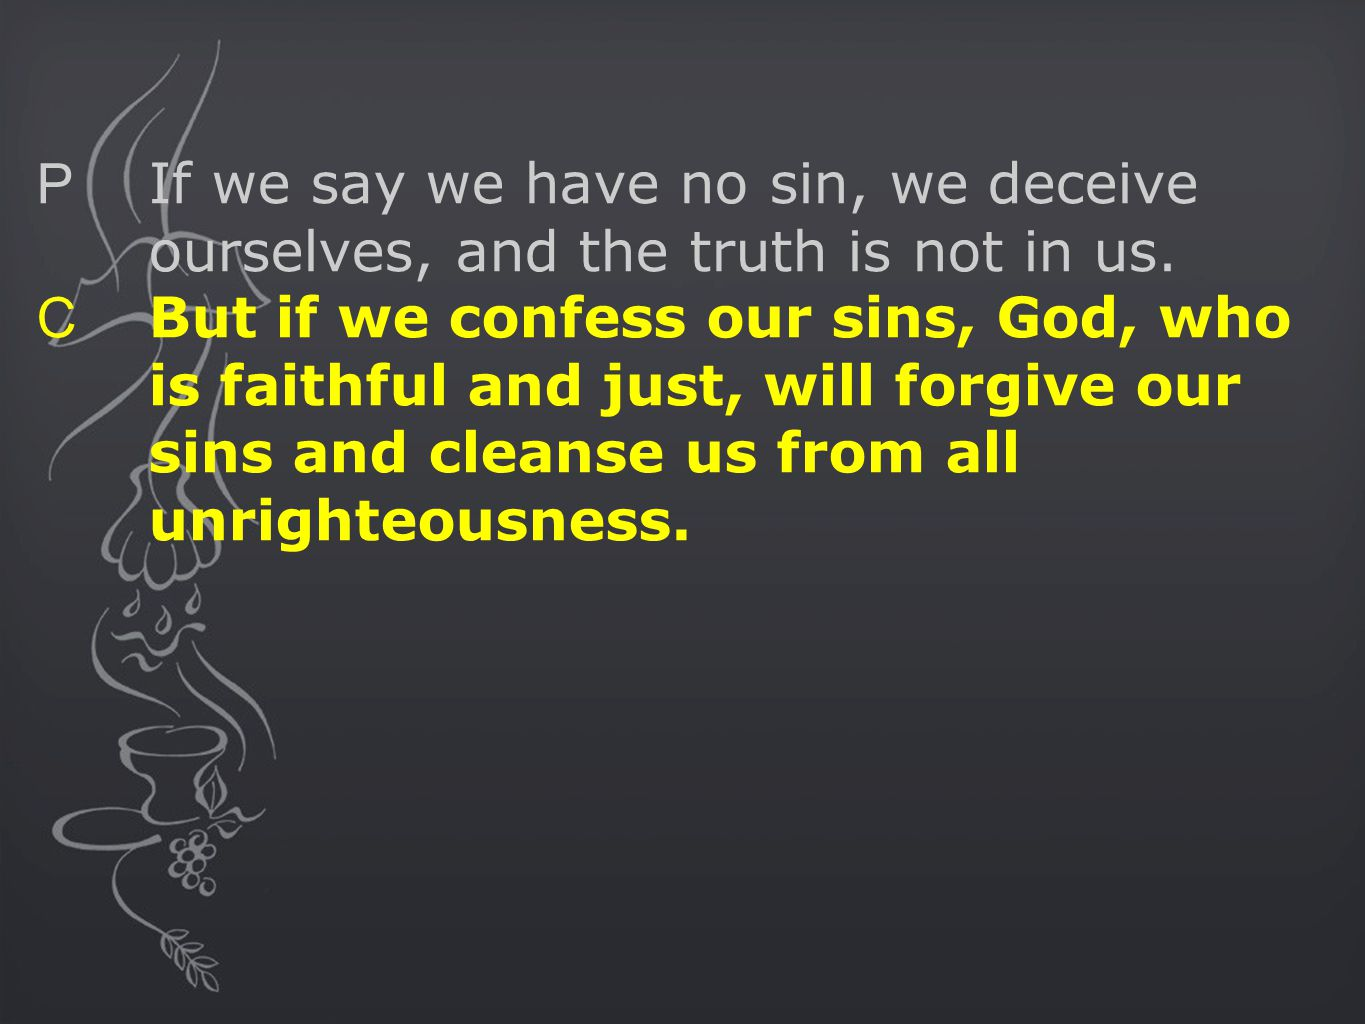 P If we say we have no sin, we deceive ourselves, and the truth is not in us.